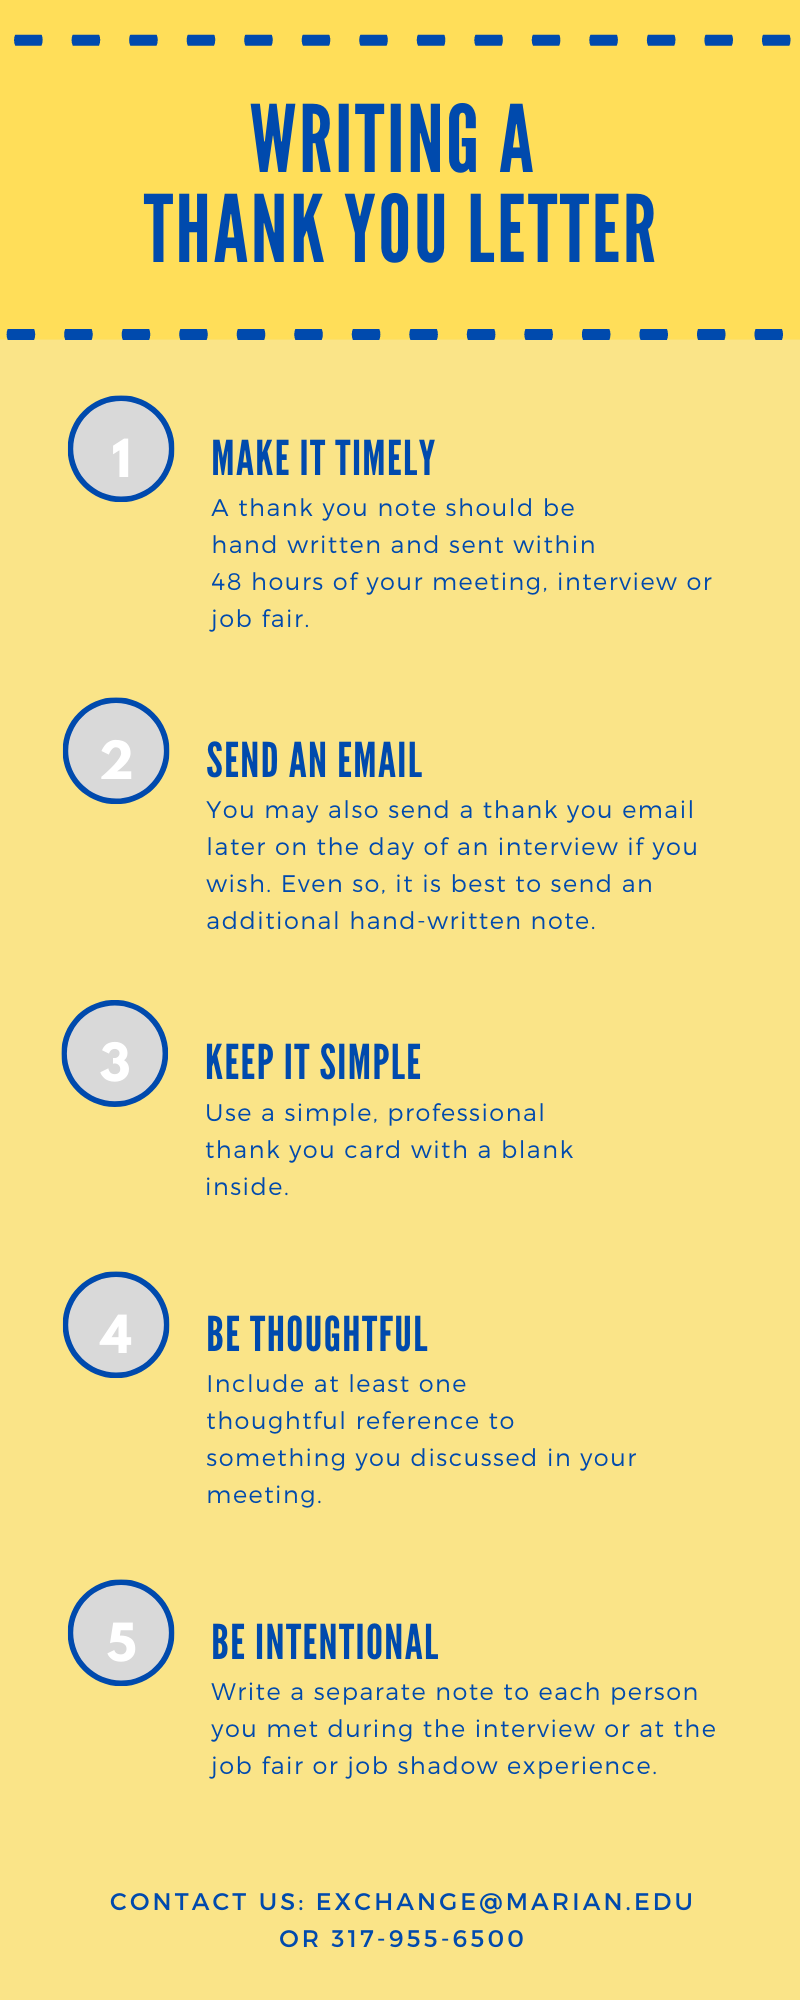 Thank You Letter Infographic